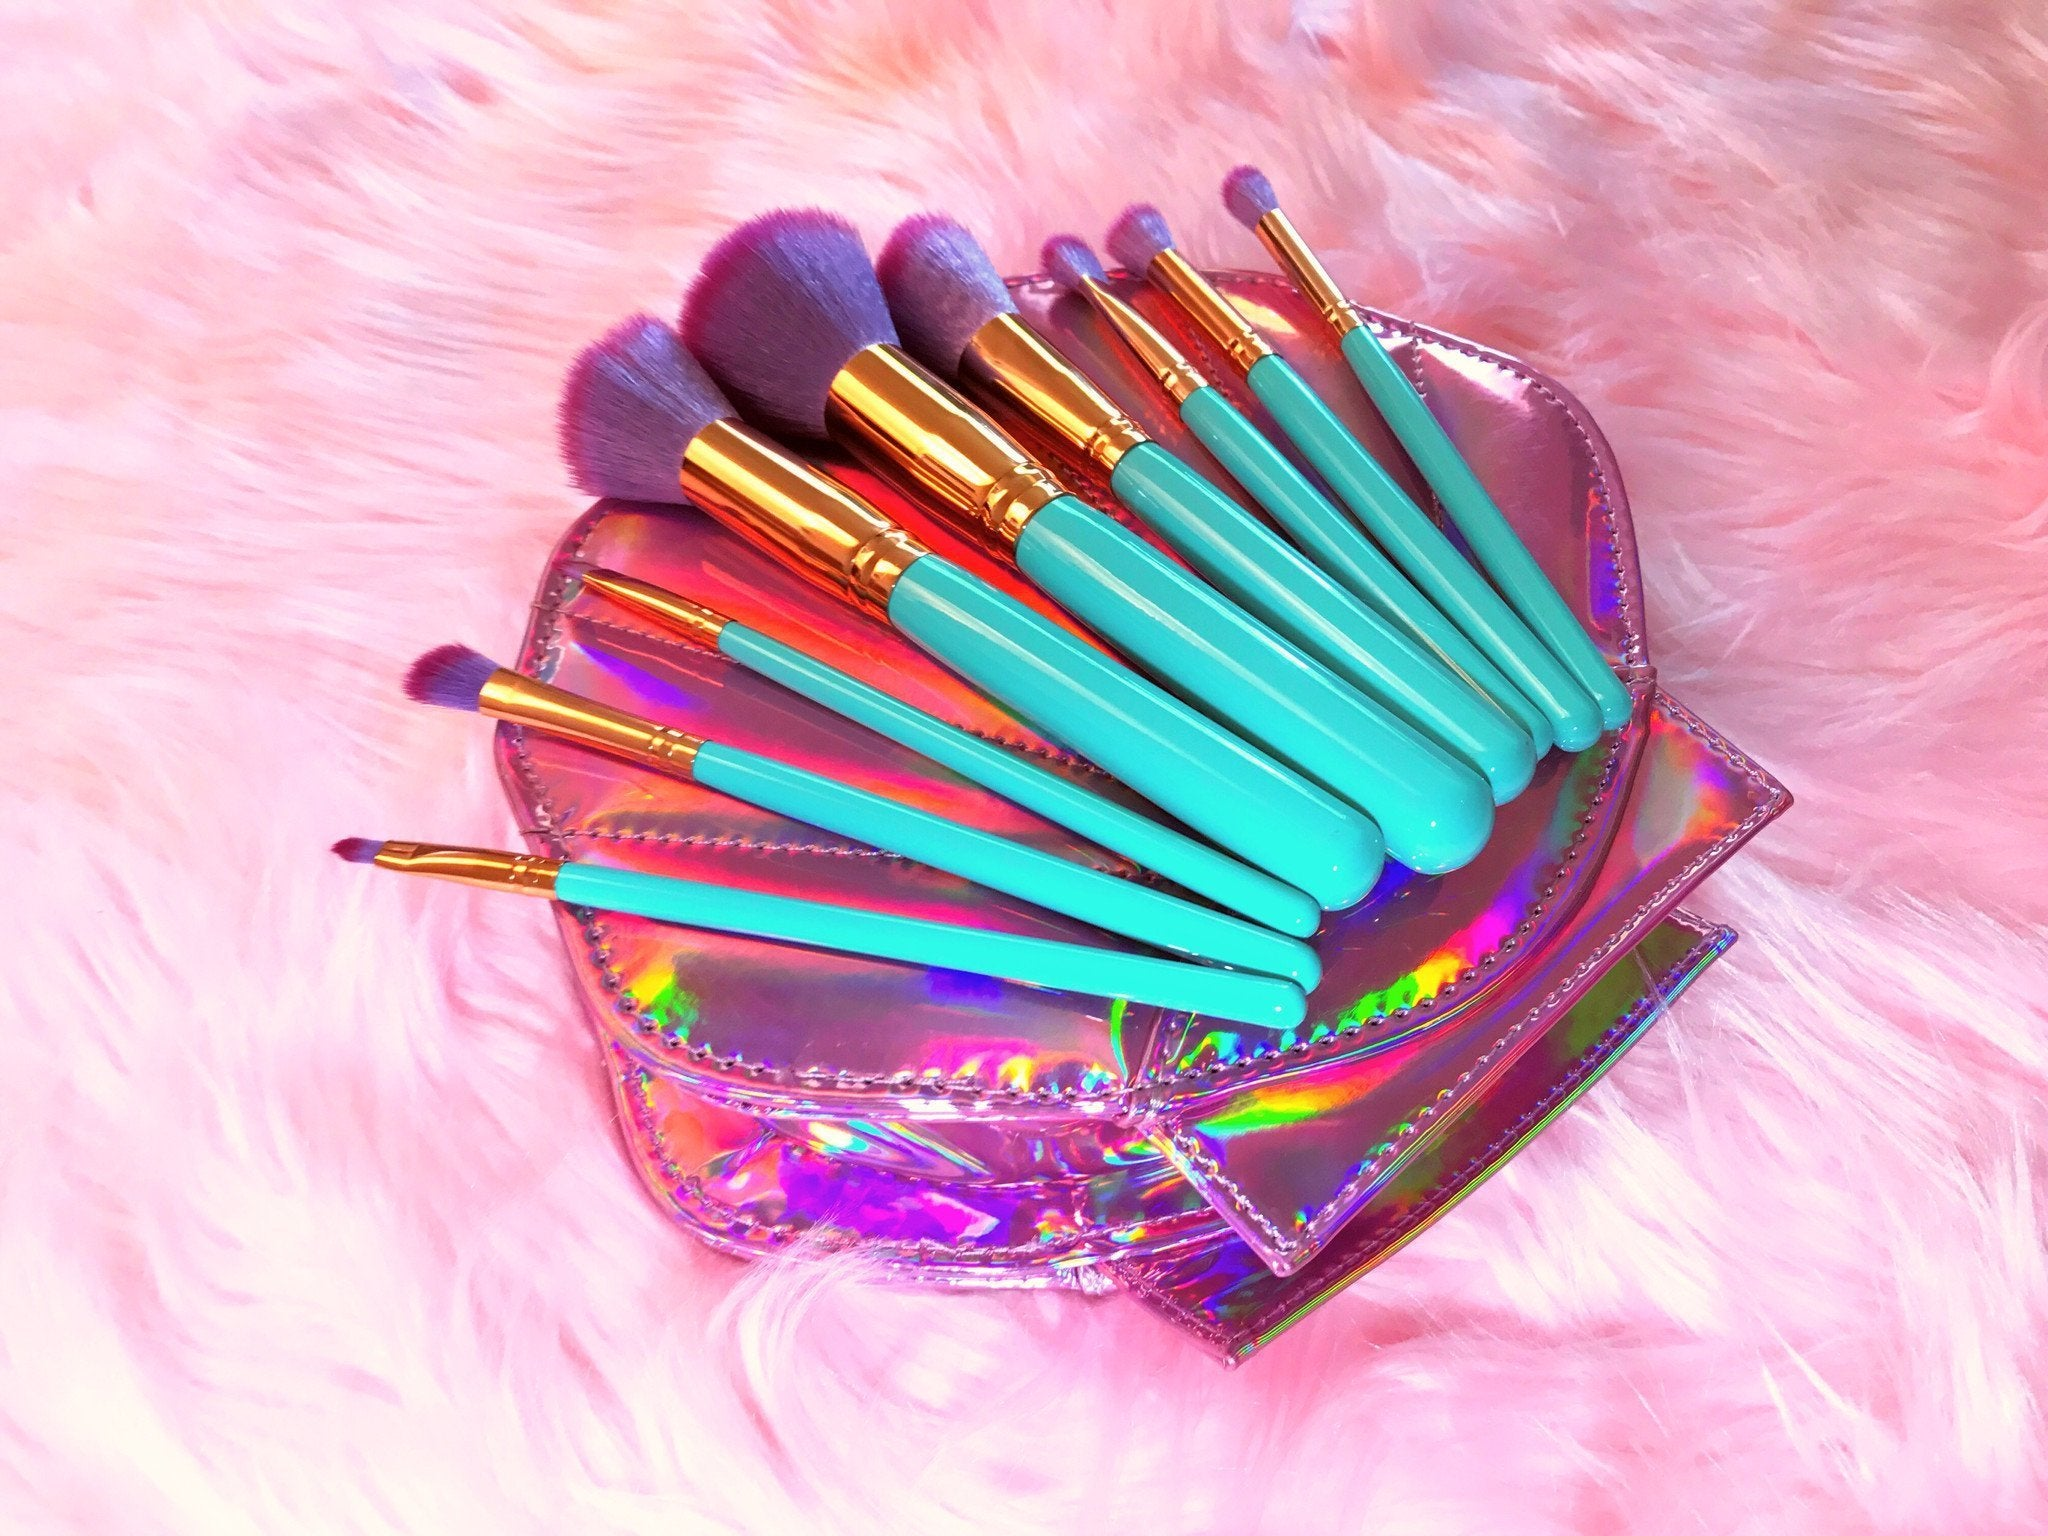 Mermaid Makeup Brushes - 10 Piece Set